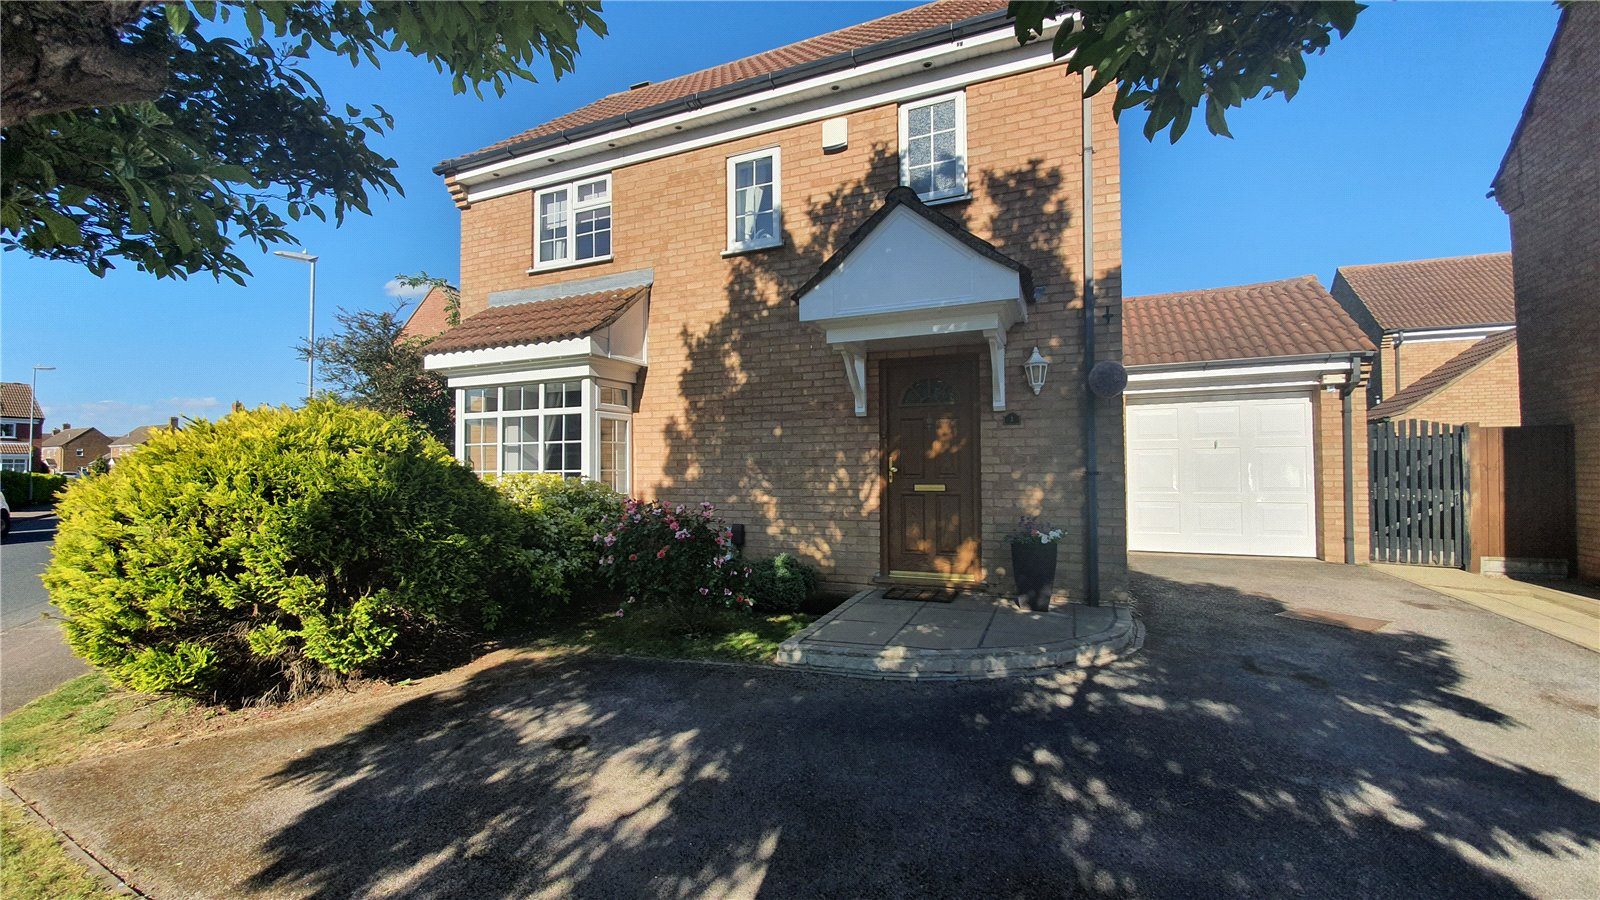 3 bed house for sale in Axis Way, Eaton Socon  - Property Image 14